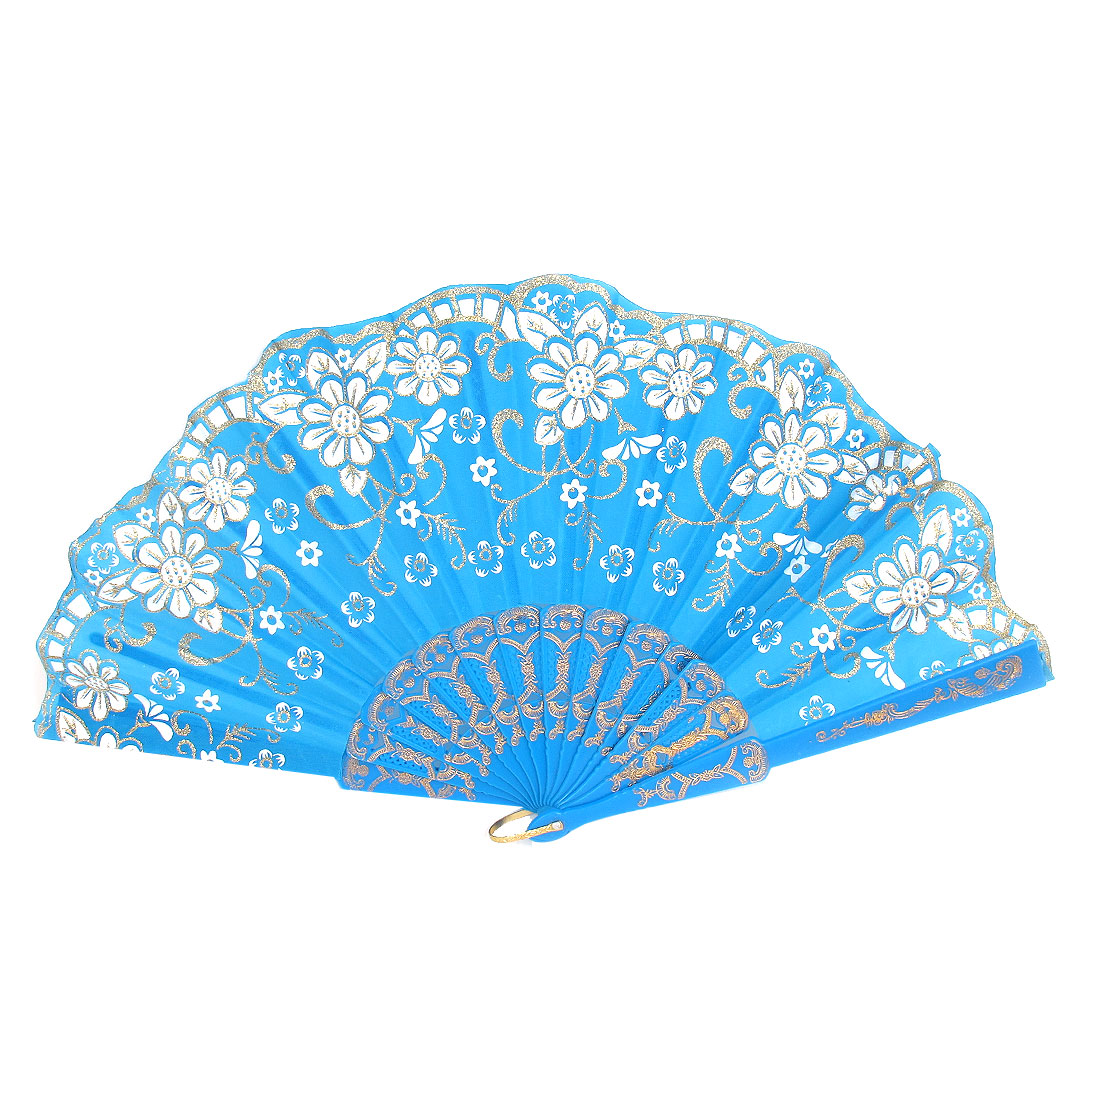 Carved Ribs Glittery Powder Decoration Wavy Edge Folding Hand Fan Blue for Women